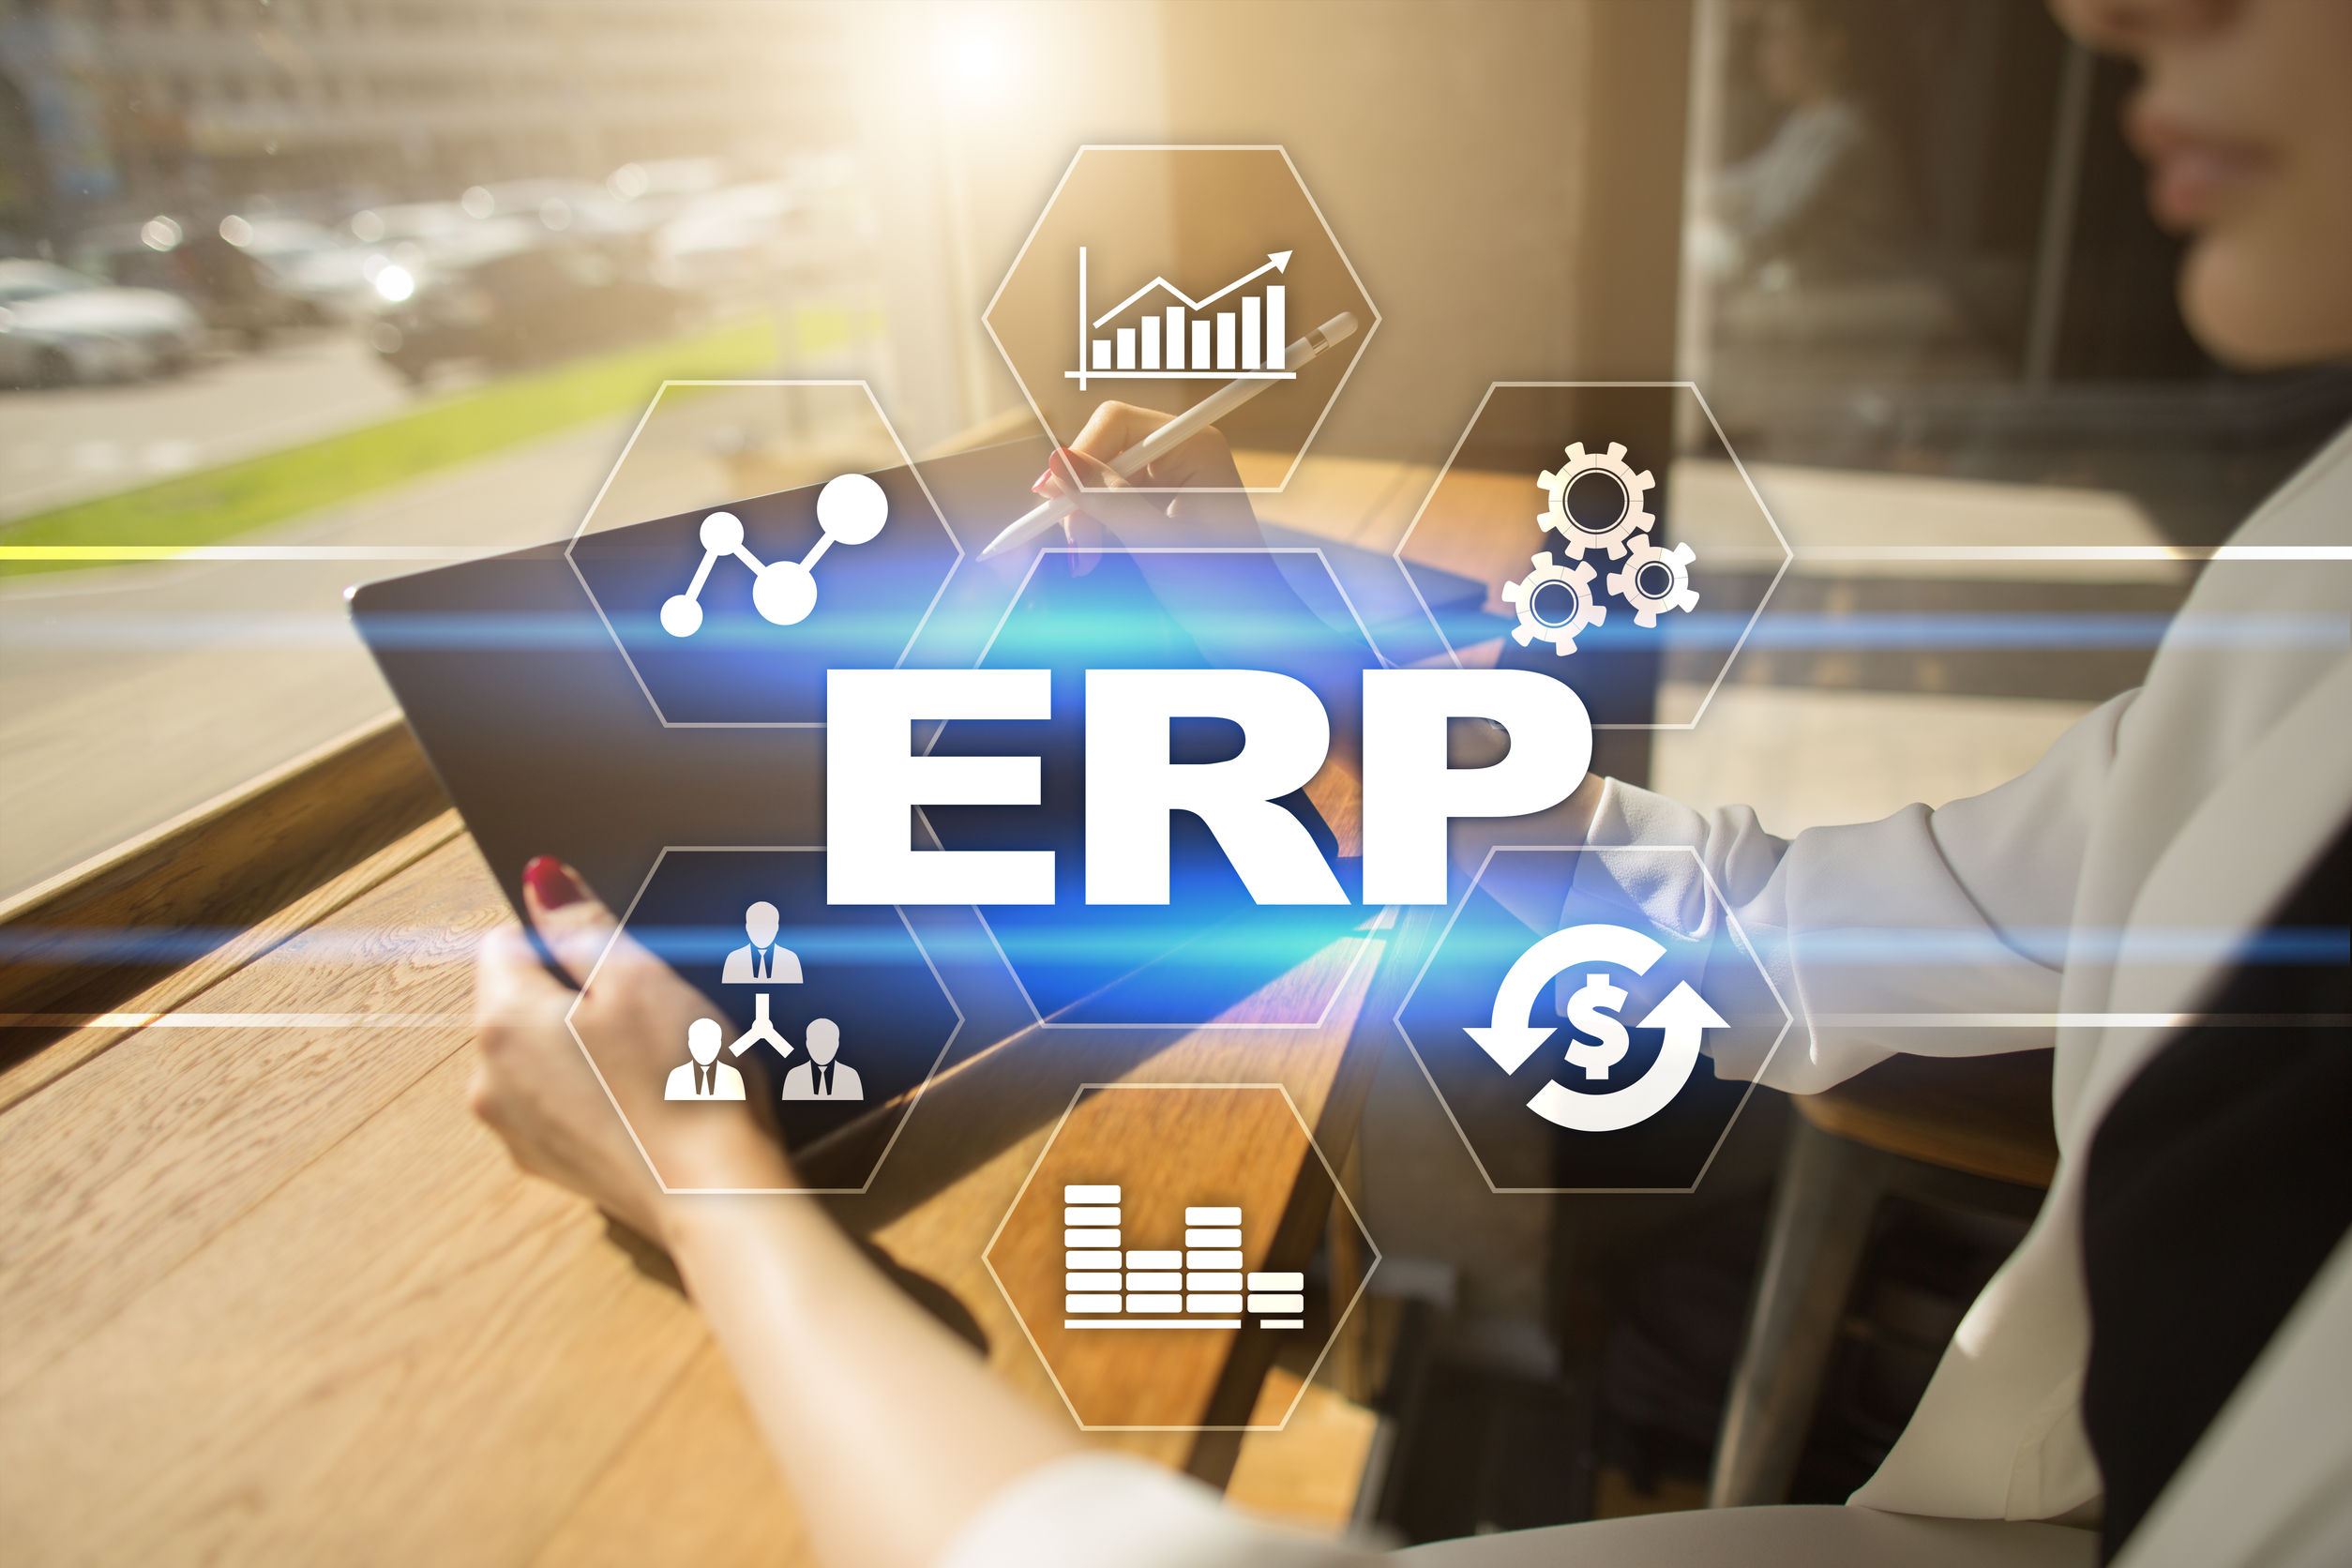 6 Ways ERP Can Save Your Business Time and Money